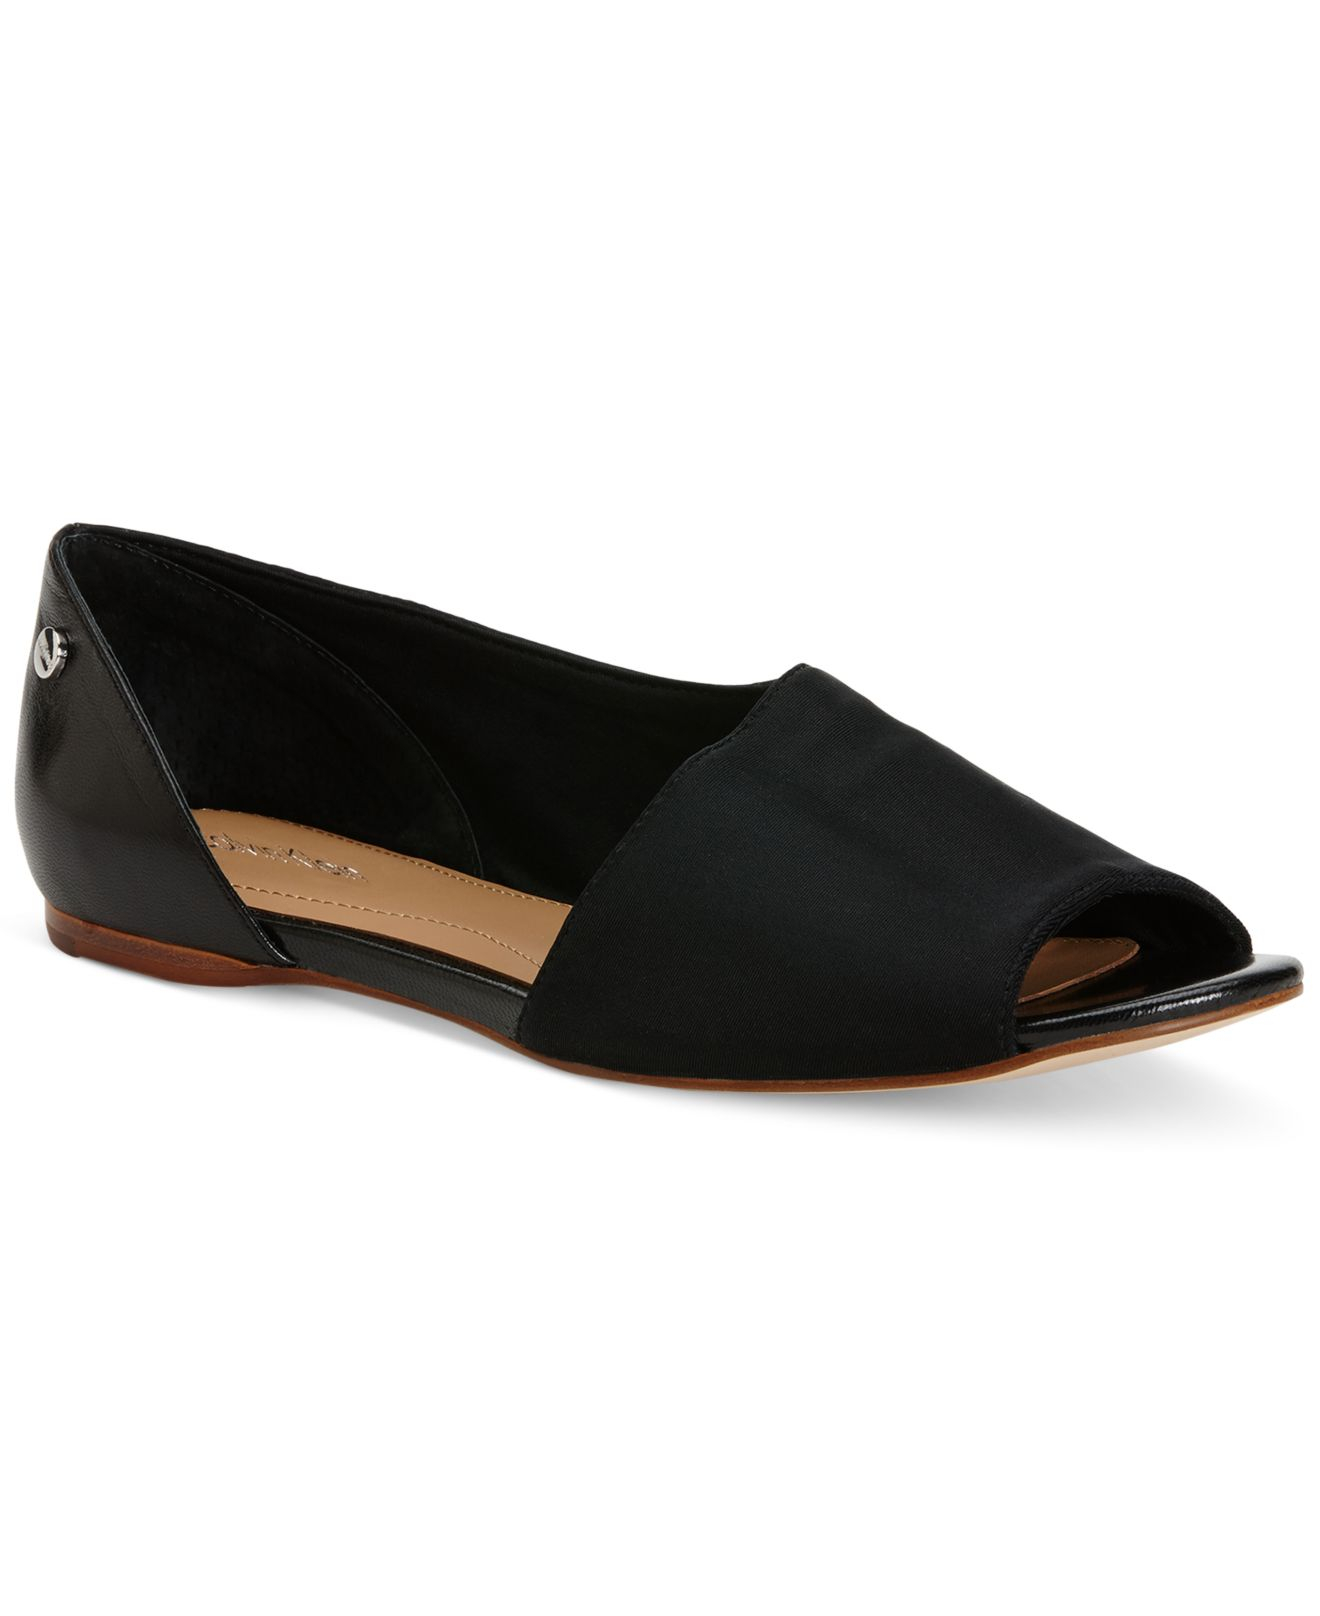 Frank And Oak Women S Shoes